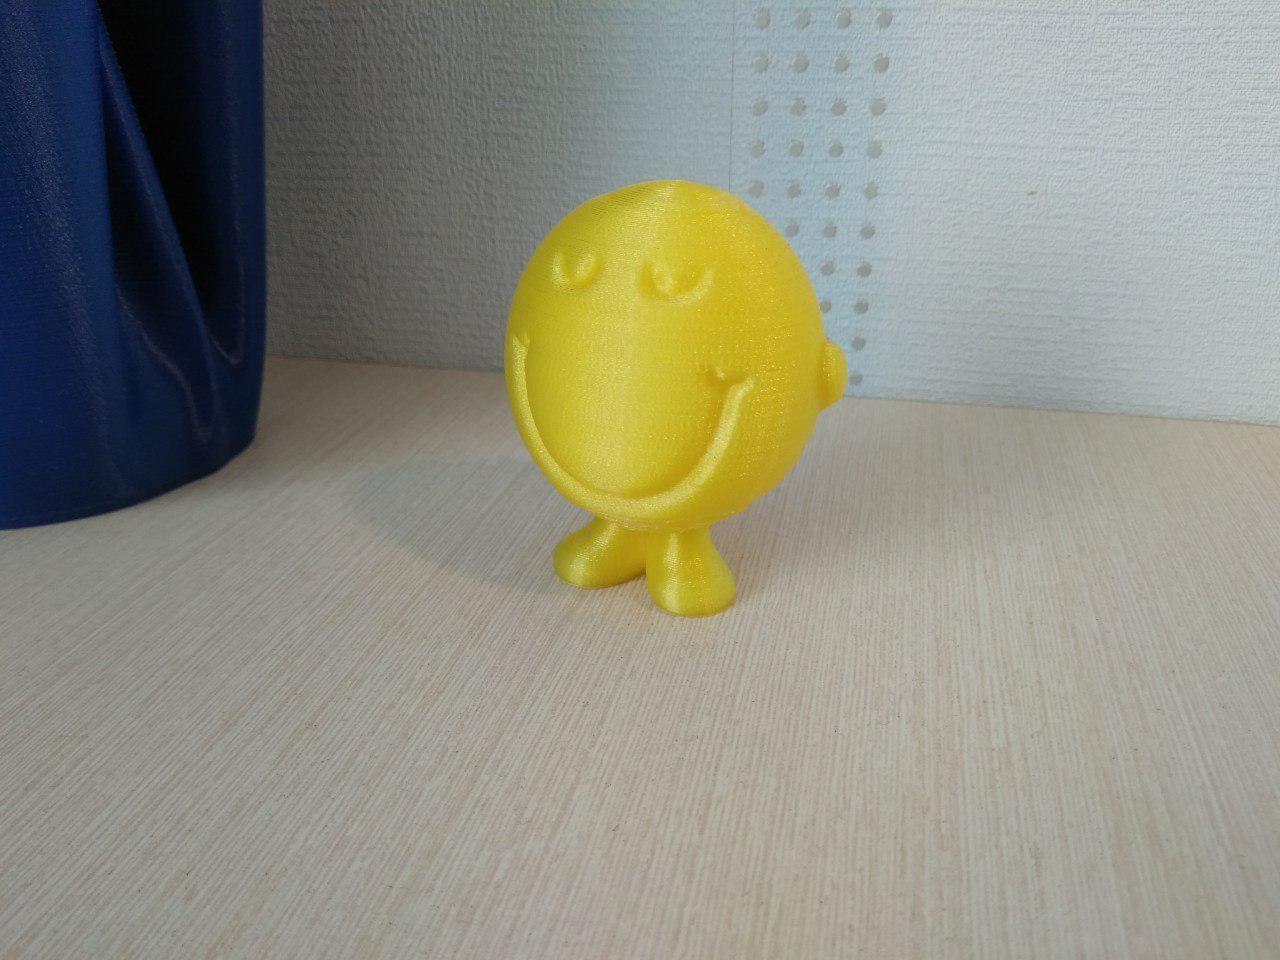 photo_2018-09-08_13-08-46.jpg Download free STL file Smiley with heart • 3D printing design, vladek9921